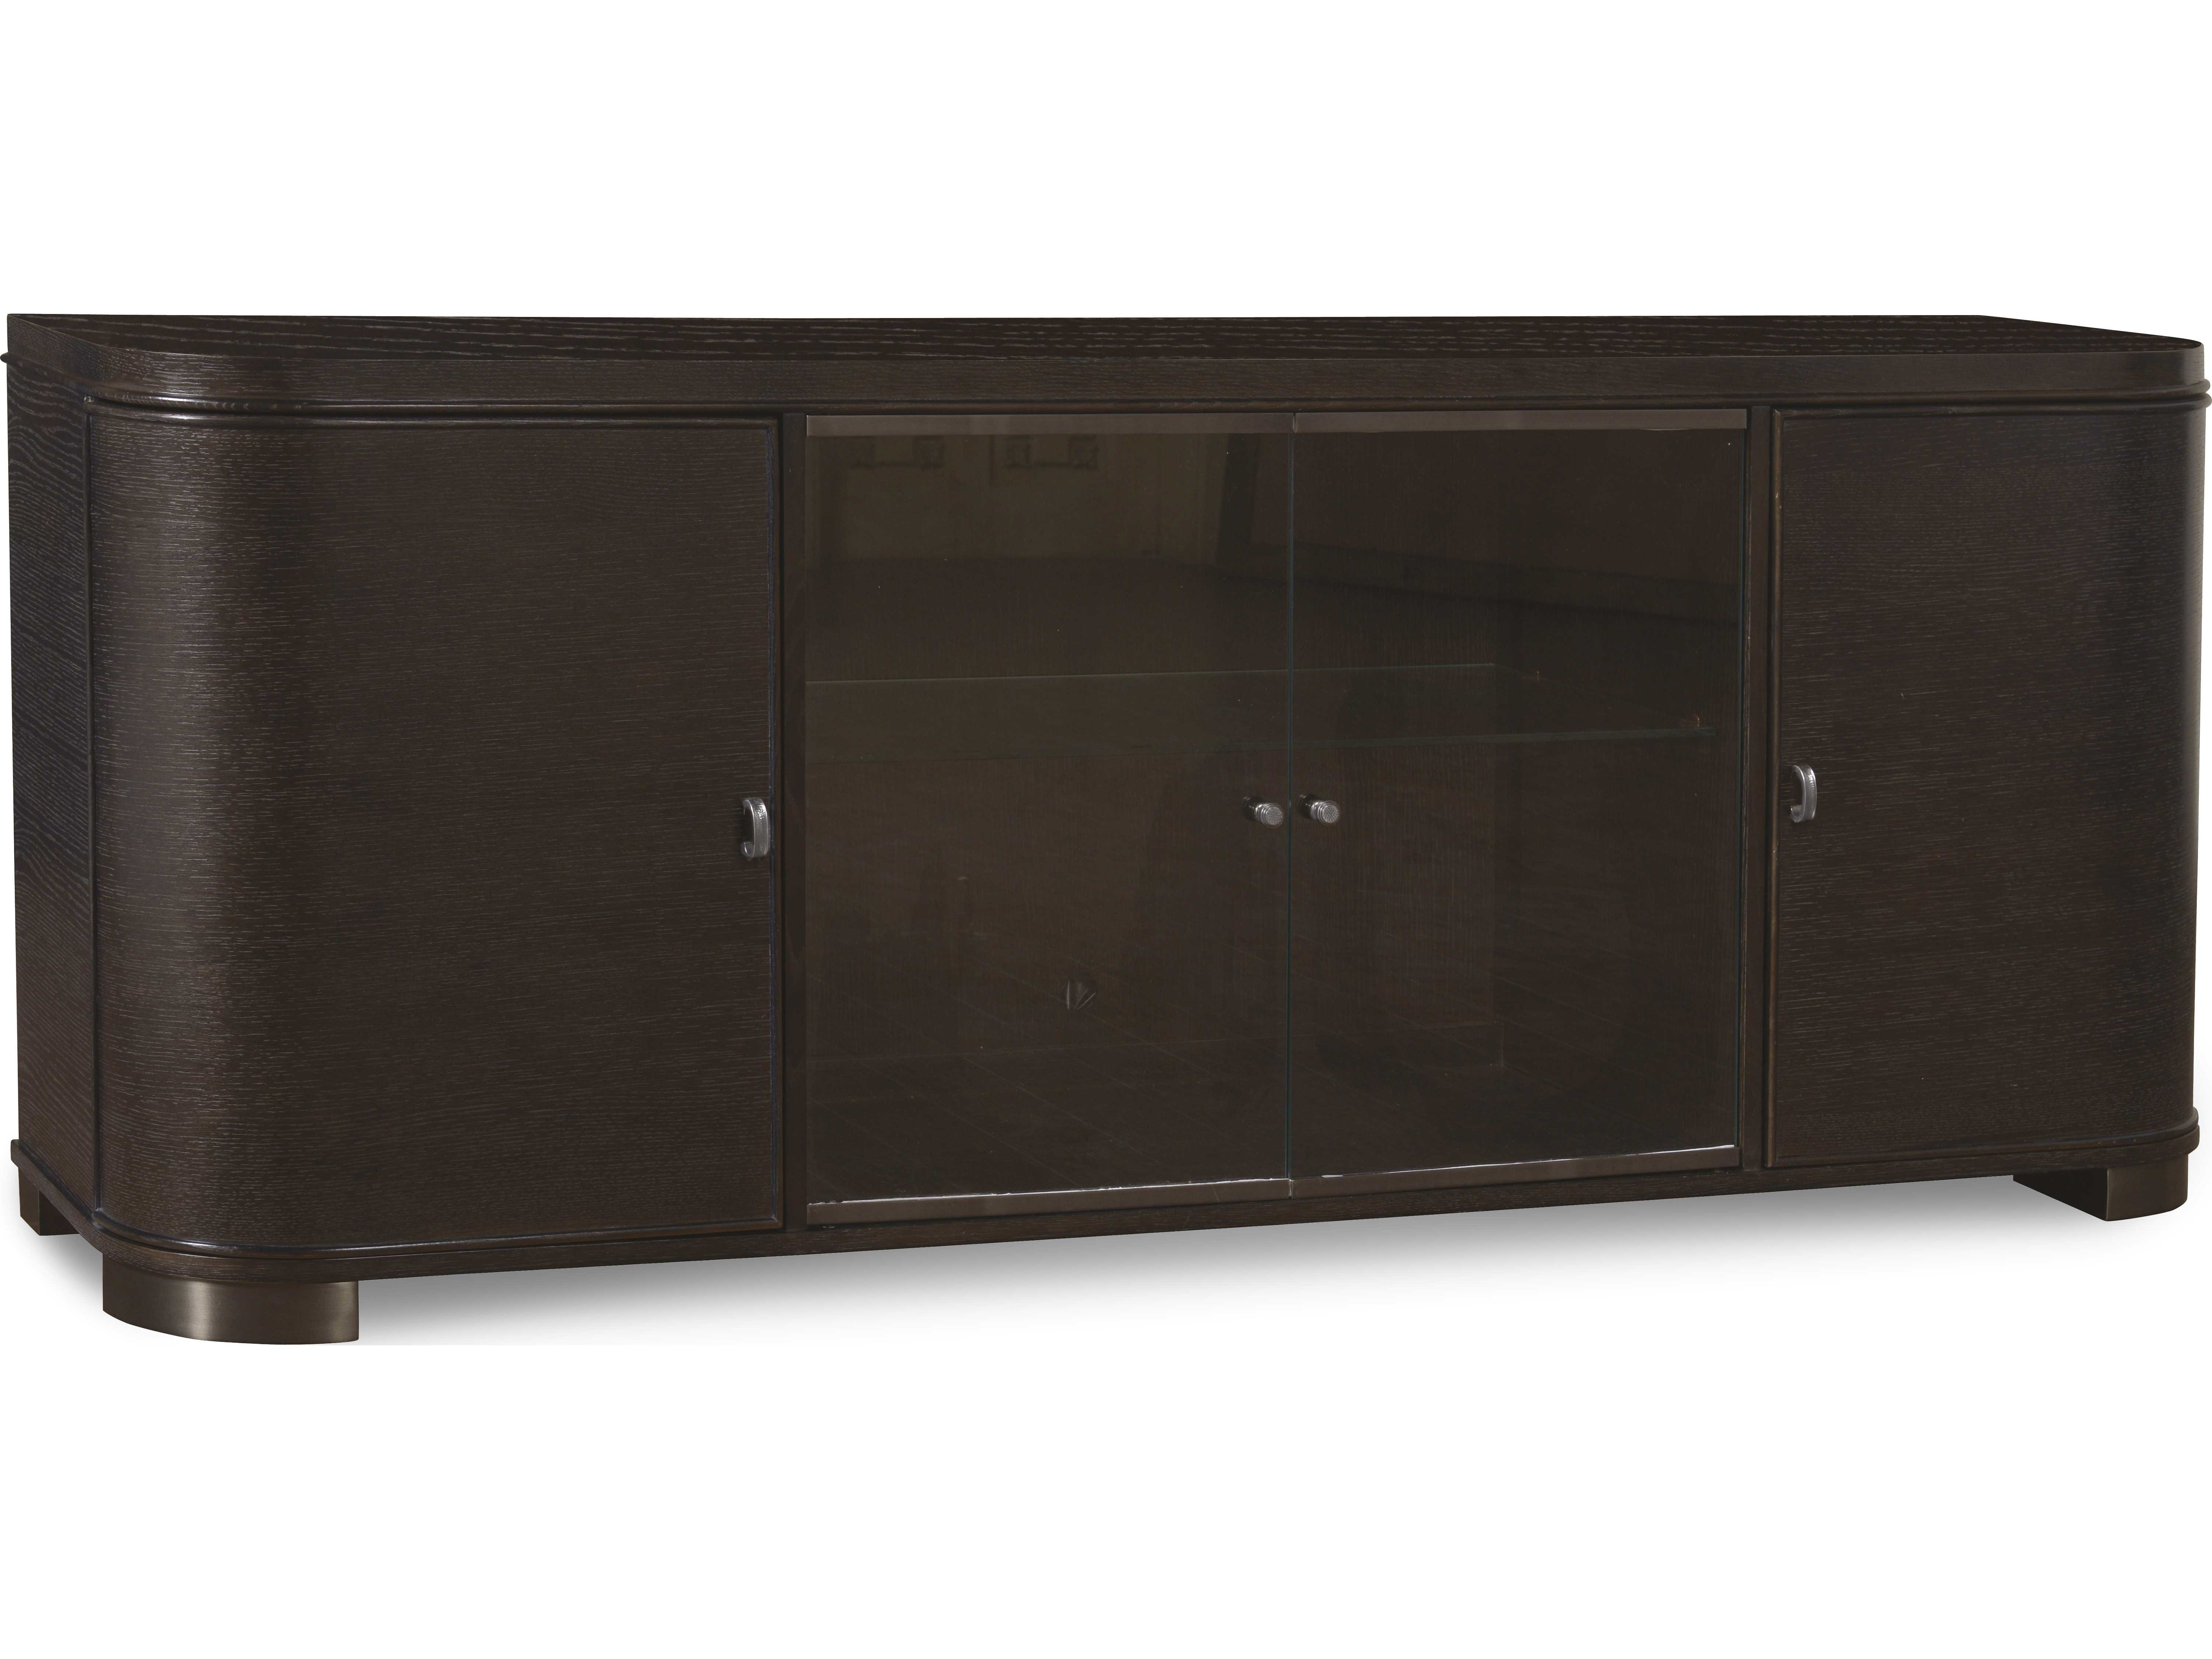 Art Furniture Greenpoint Coffee Bean 79 39 39 L X 20 39 39 W Entertainment Console At2144232304